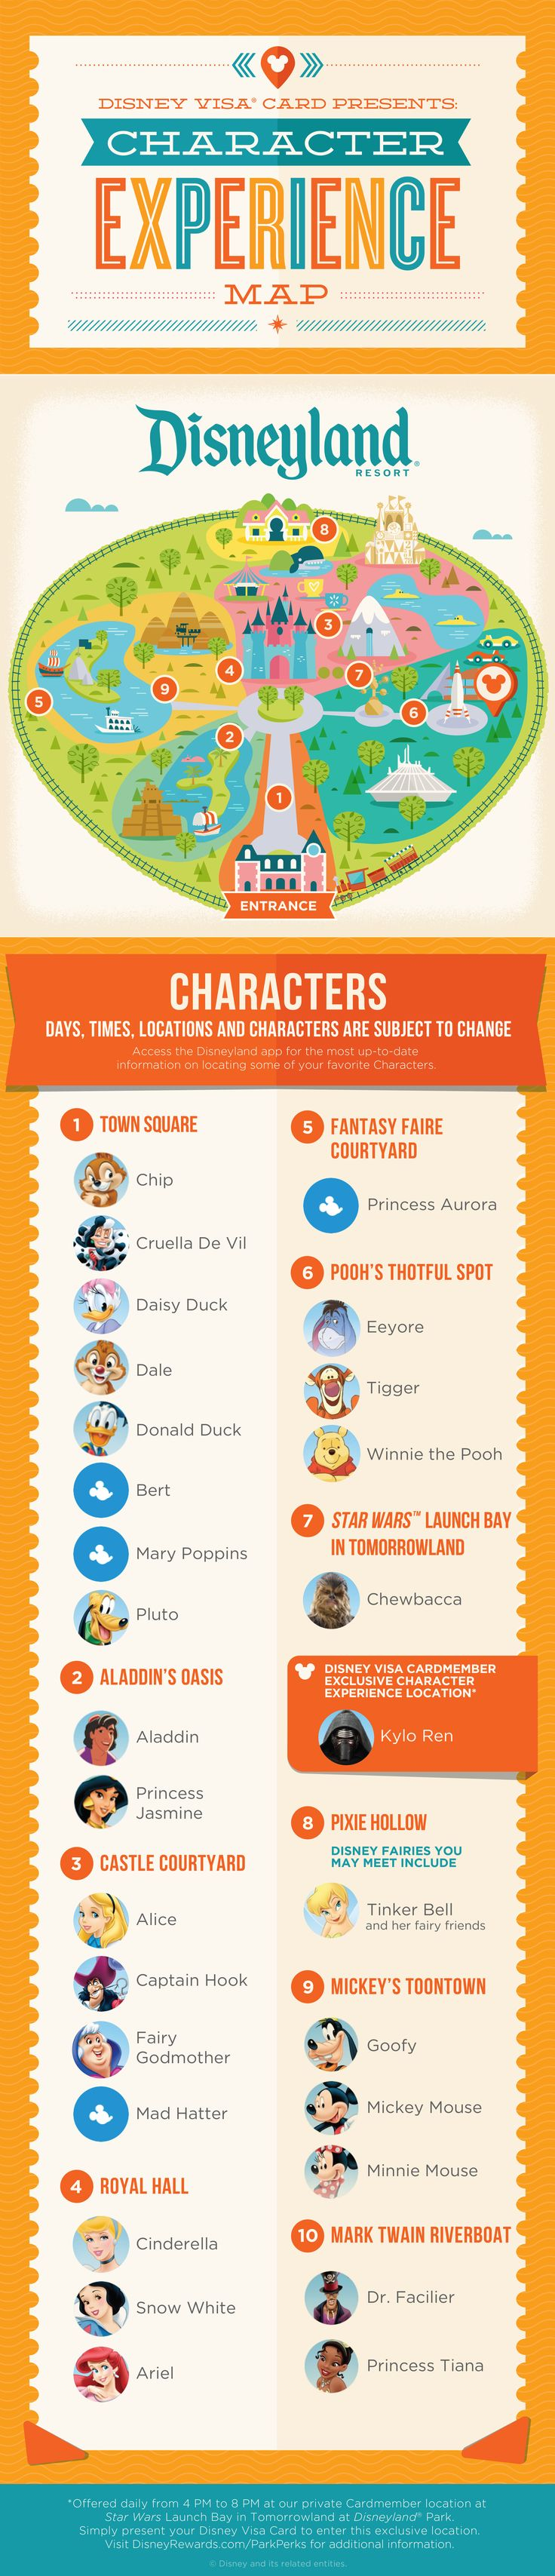 Hoping to meet some of your favorite Characters at Disneyland® Park? Stop hoping and start planning with this handy, dandy guide to the Characters you can meet throughout the land, as well as where and when to find them! Keep this map handy – oh, and your camera and autograph book, too, obviously! Go to Disneyland.com for all up-to-date information.